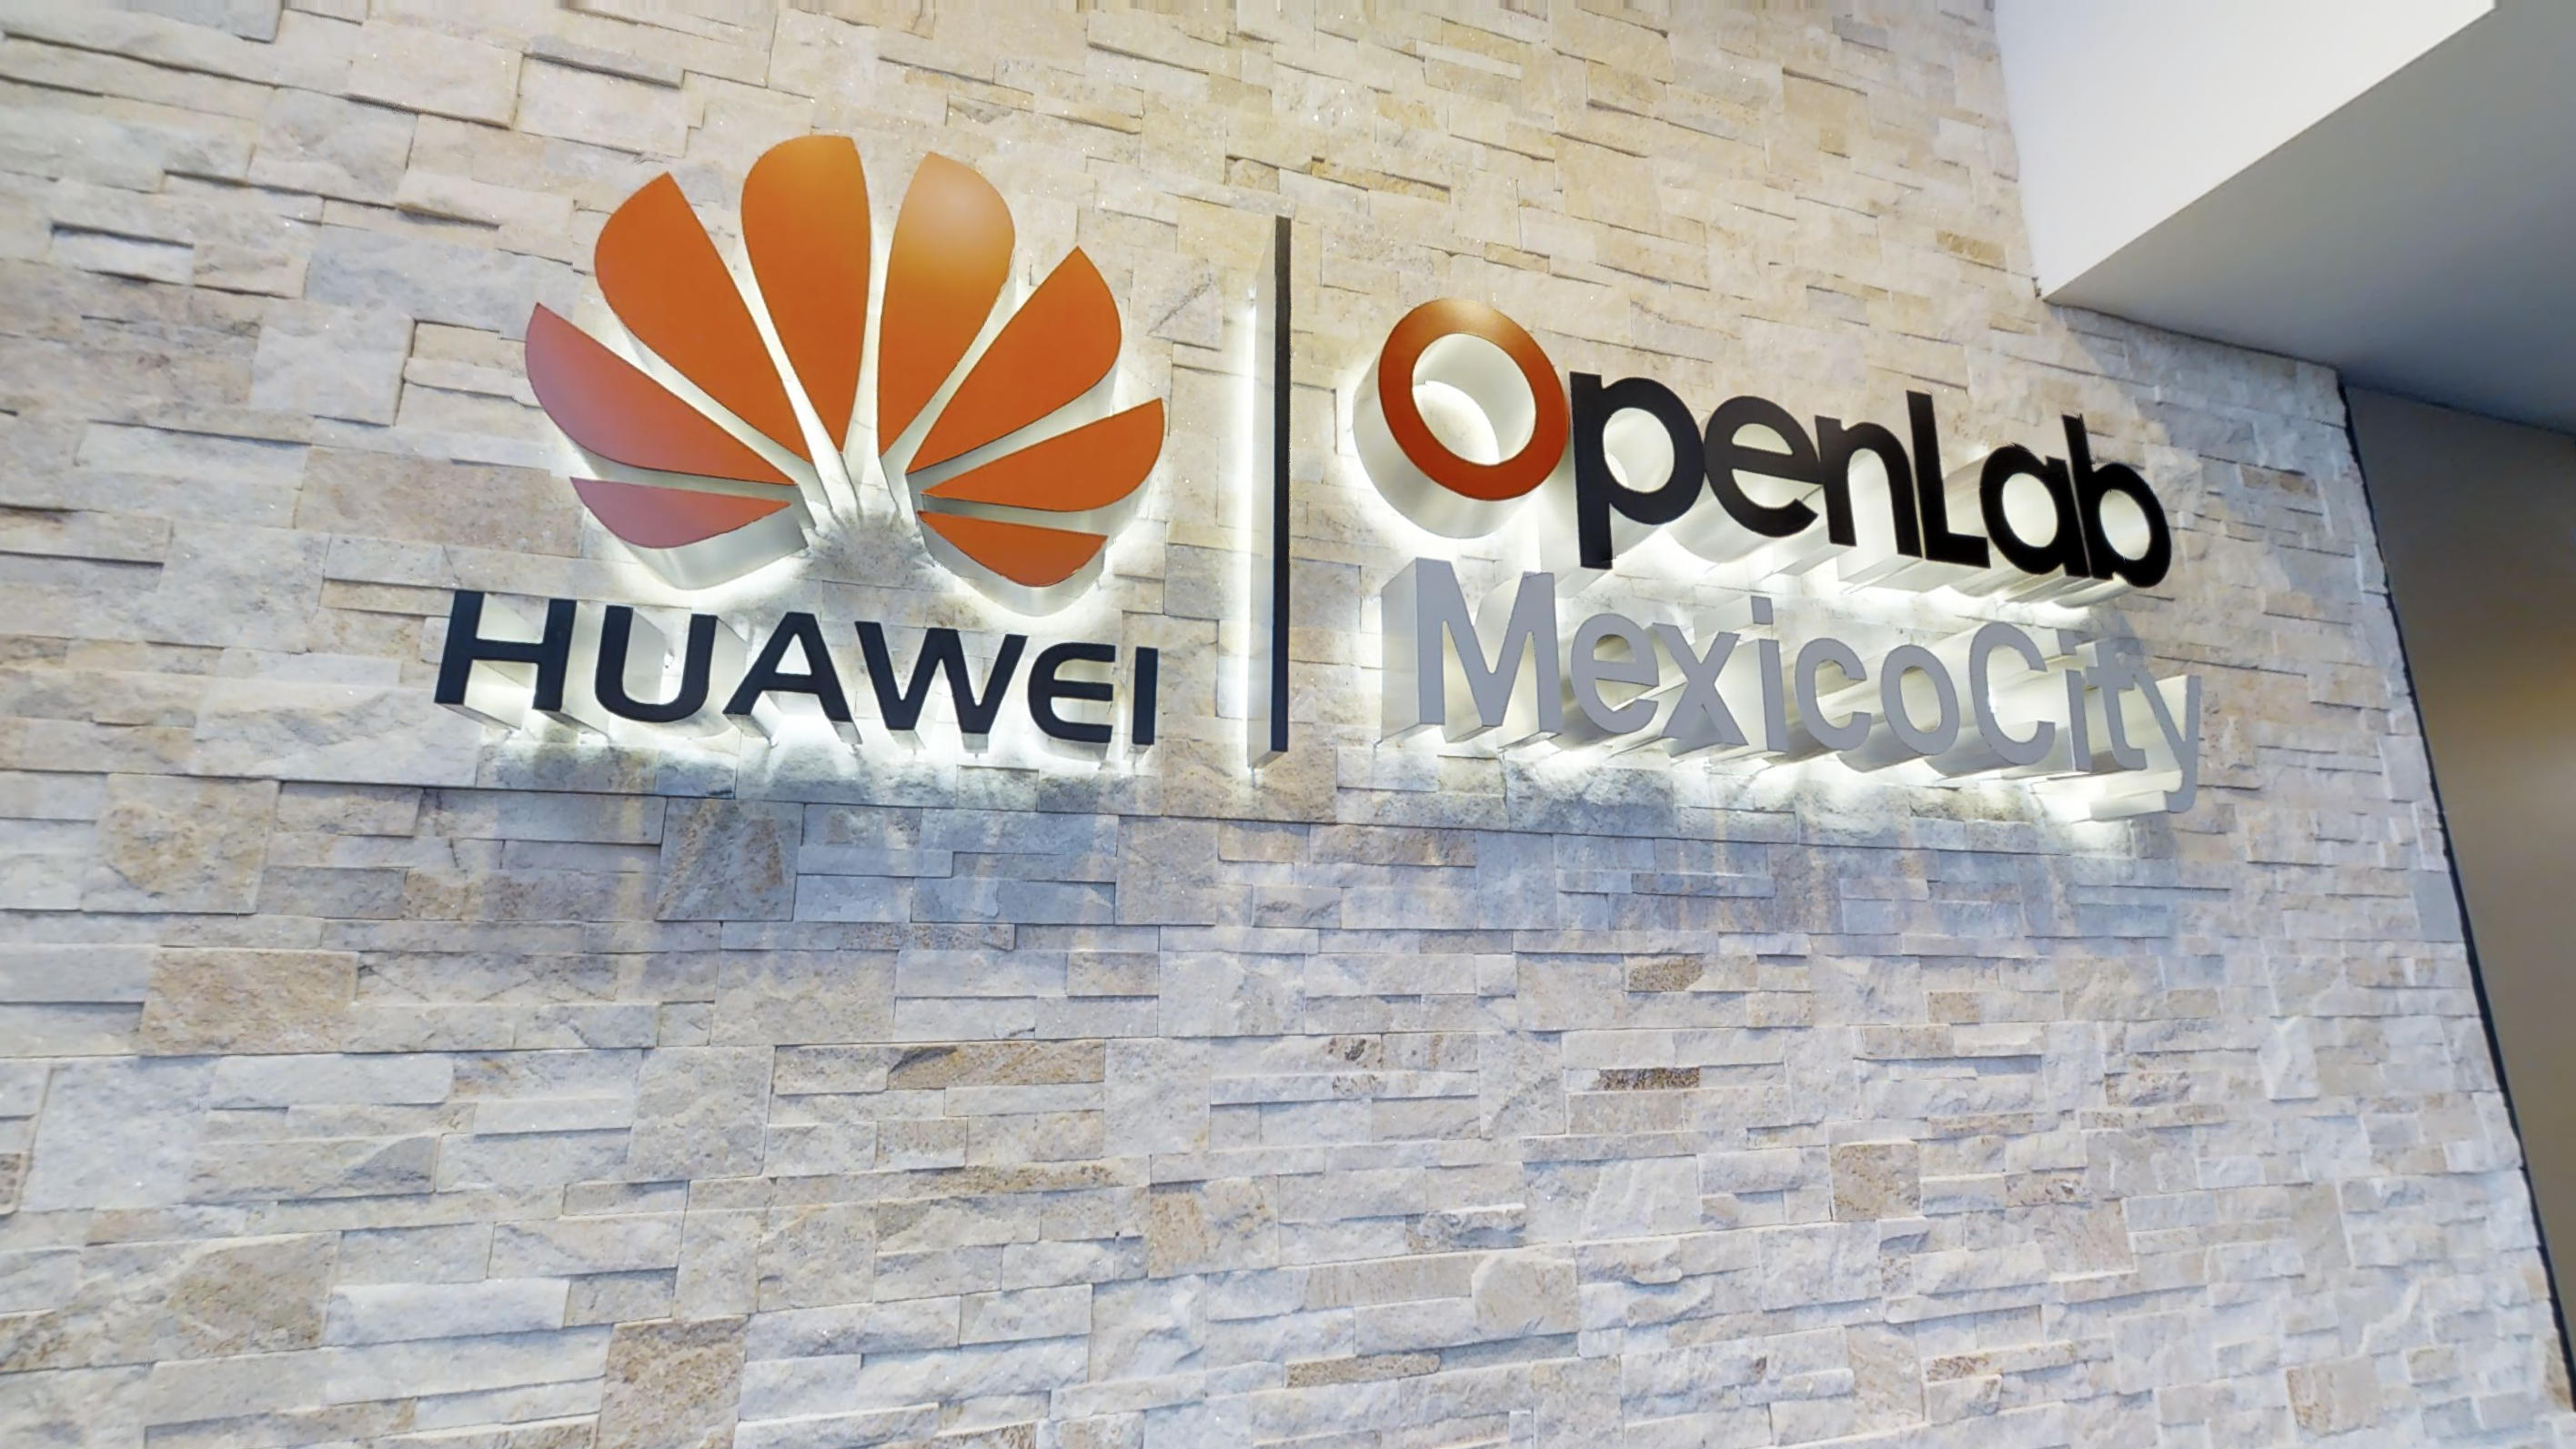 Huawei OpenLab Mexico City